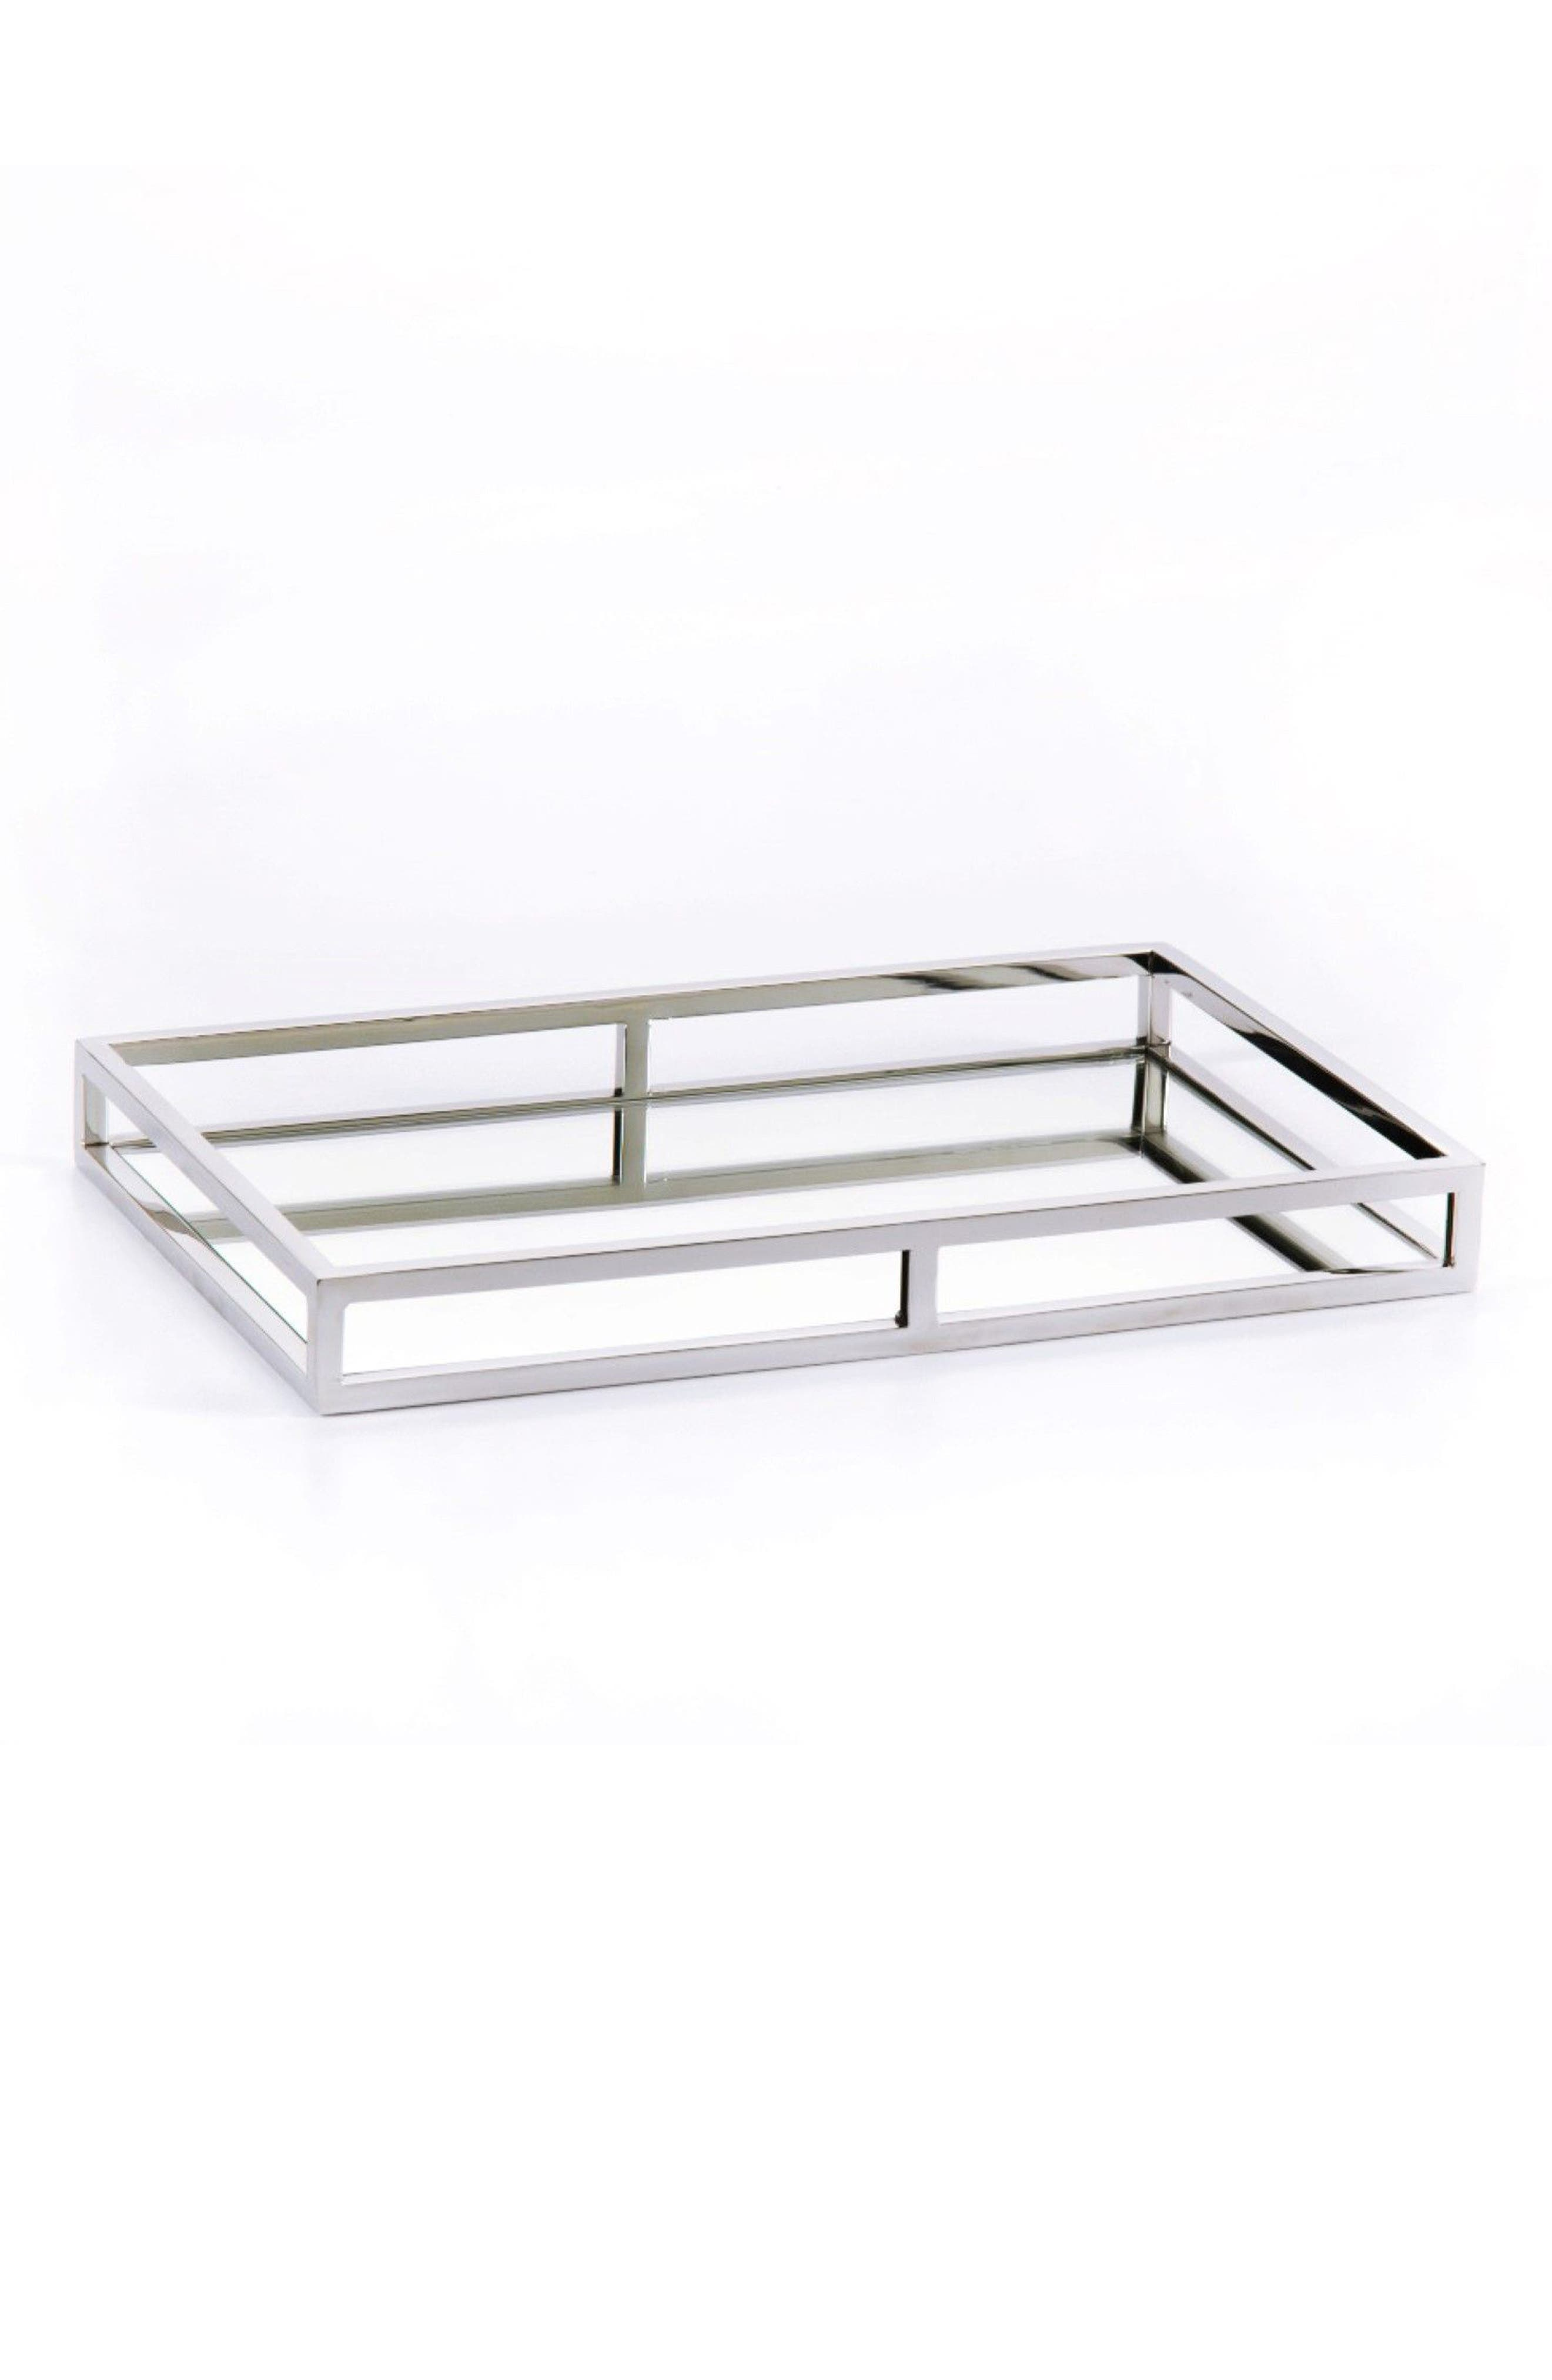 Venturi Rectangular Mirrored Tray,                             Main thumbnail 1, color,                             SILVER